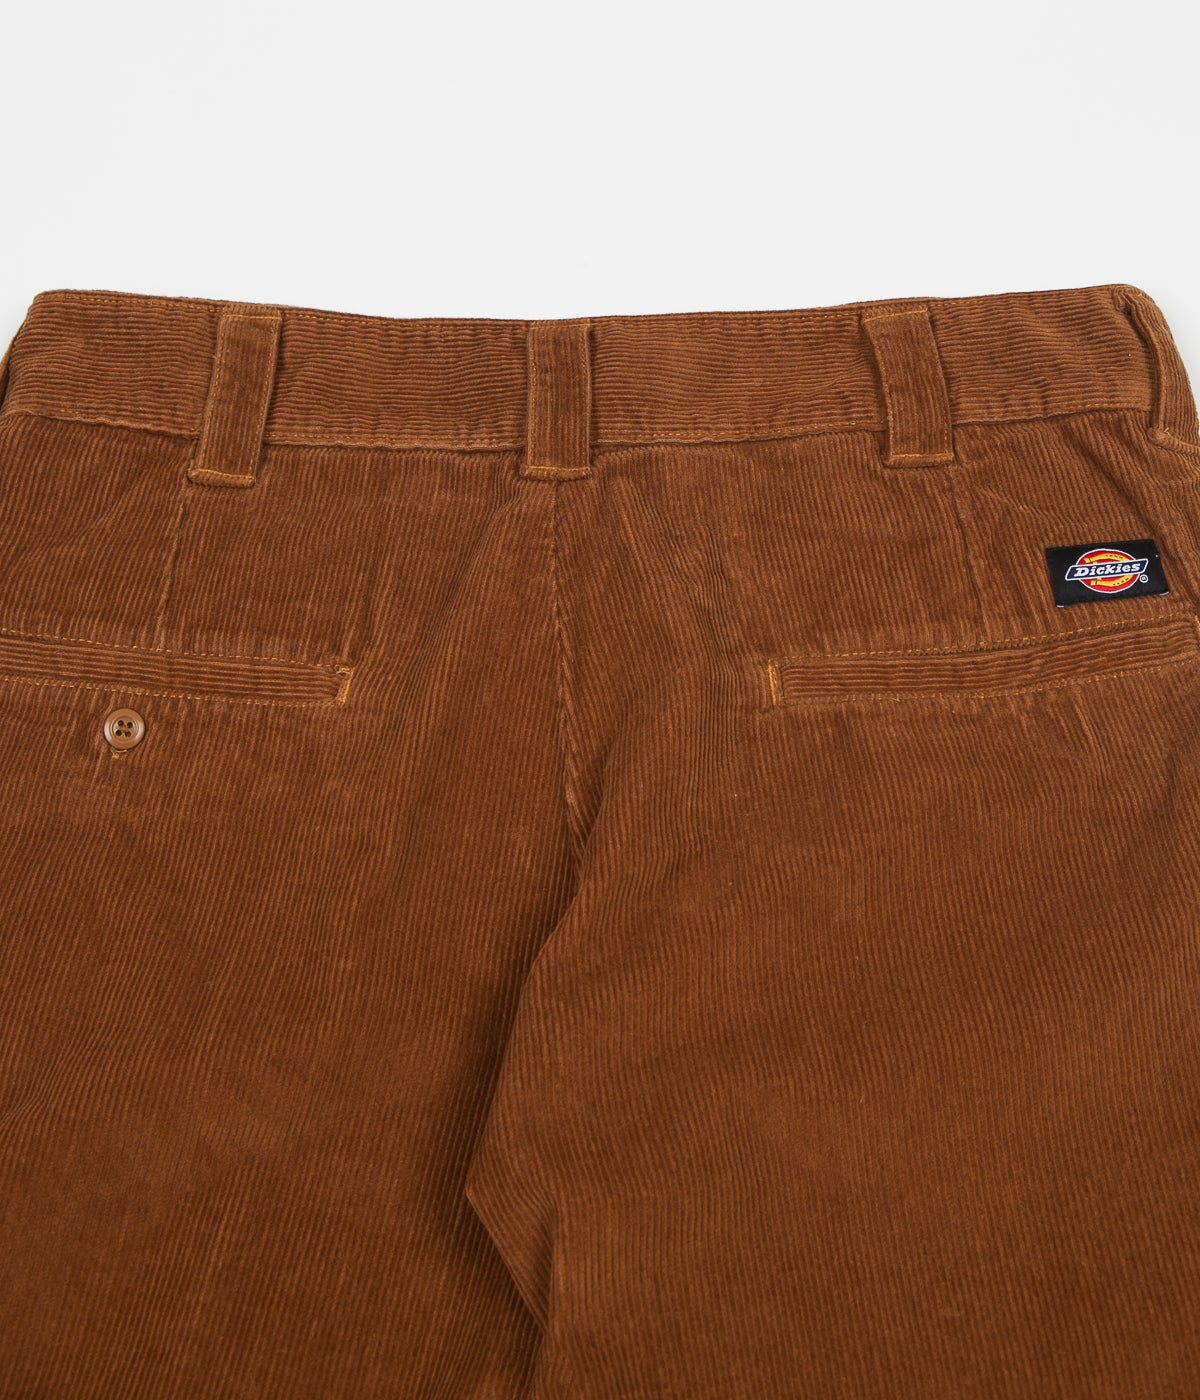 Dickies 873 Cord Trousers - Brown Duck